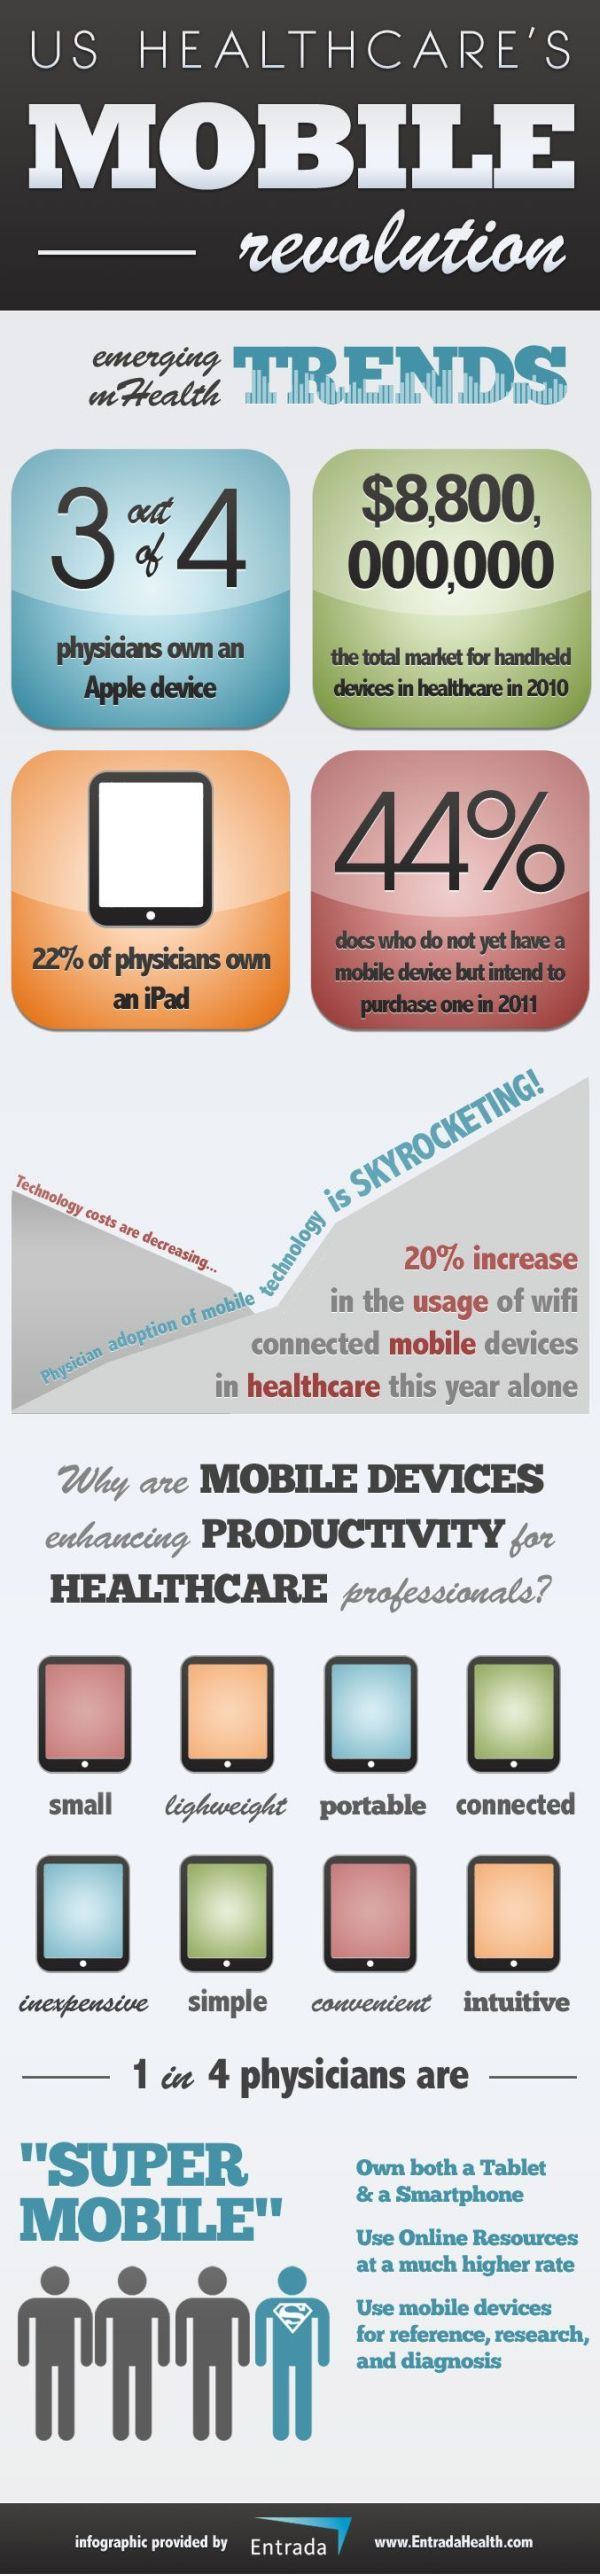 "Is your physician ""super mobile""?    According to this infographic, one in four physicians owns a tablet and a smartphone, use online resources at a much higher rate, and use their mobile devices for references, research, and even diagnosis.    Handheld devices have become a million dollar industry for health care professionals—in 2010, the total market for handheld devices in health care reached $8,800,000."